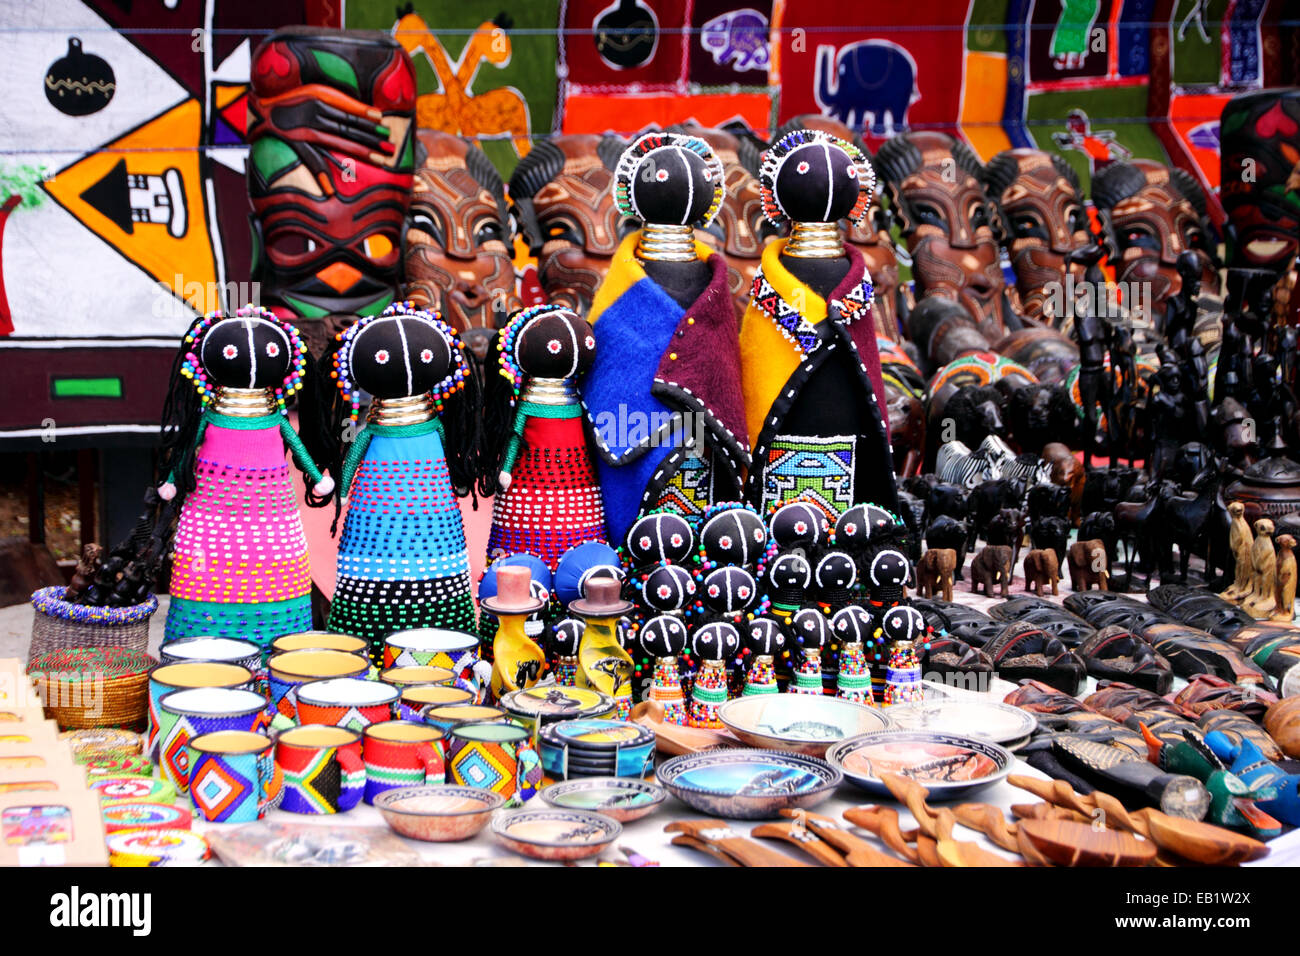 A Market Stall Selling Colourful African Crafts Stock Photo